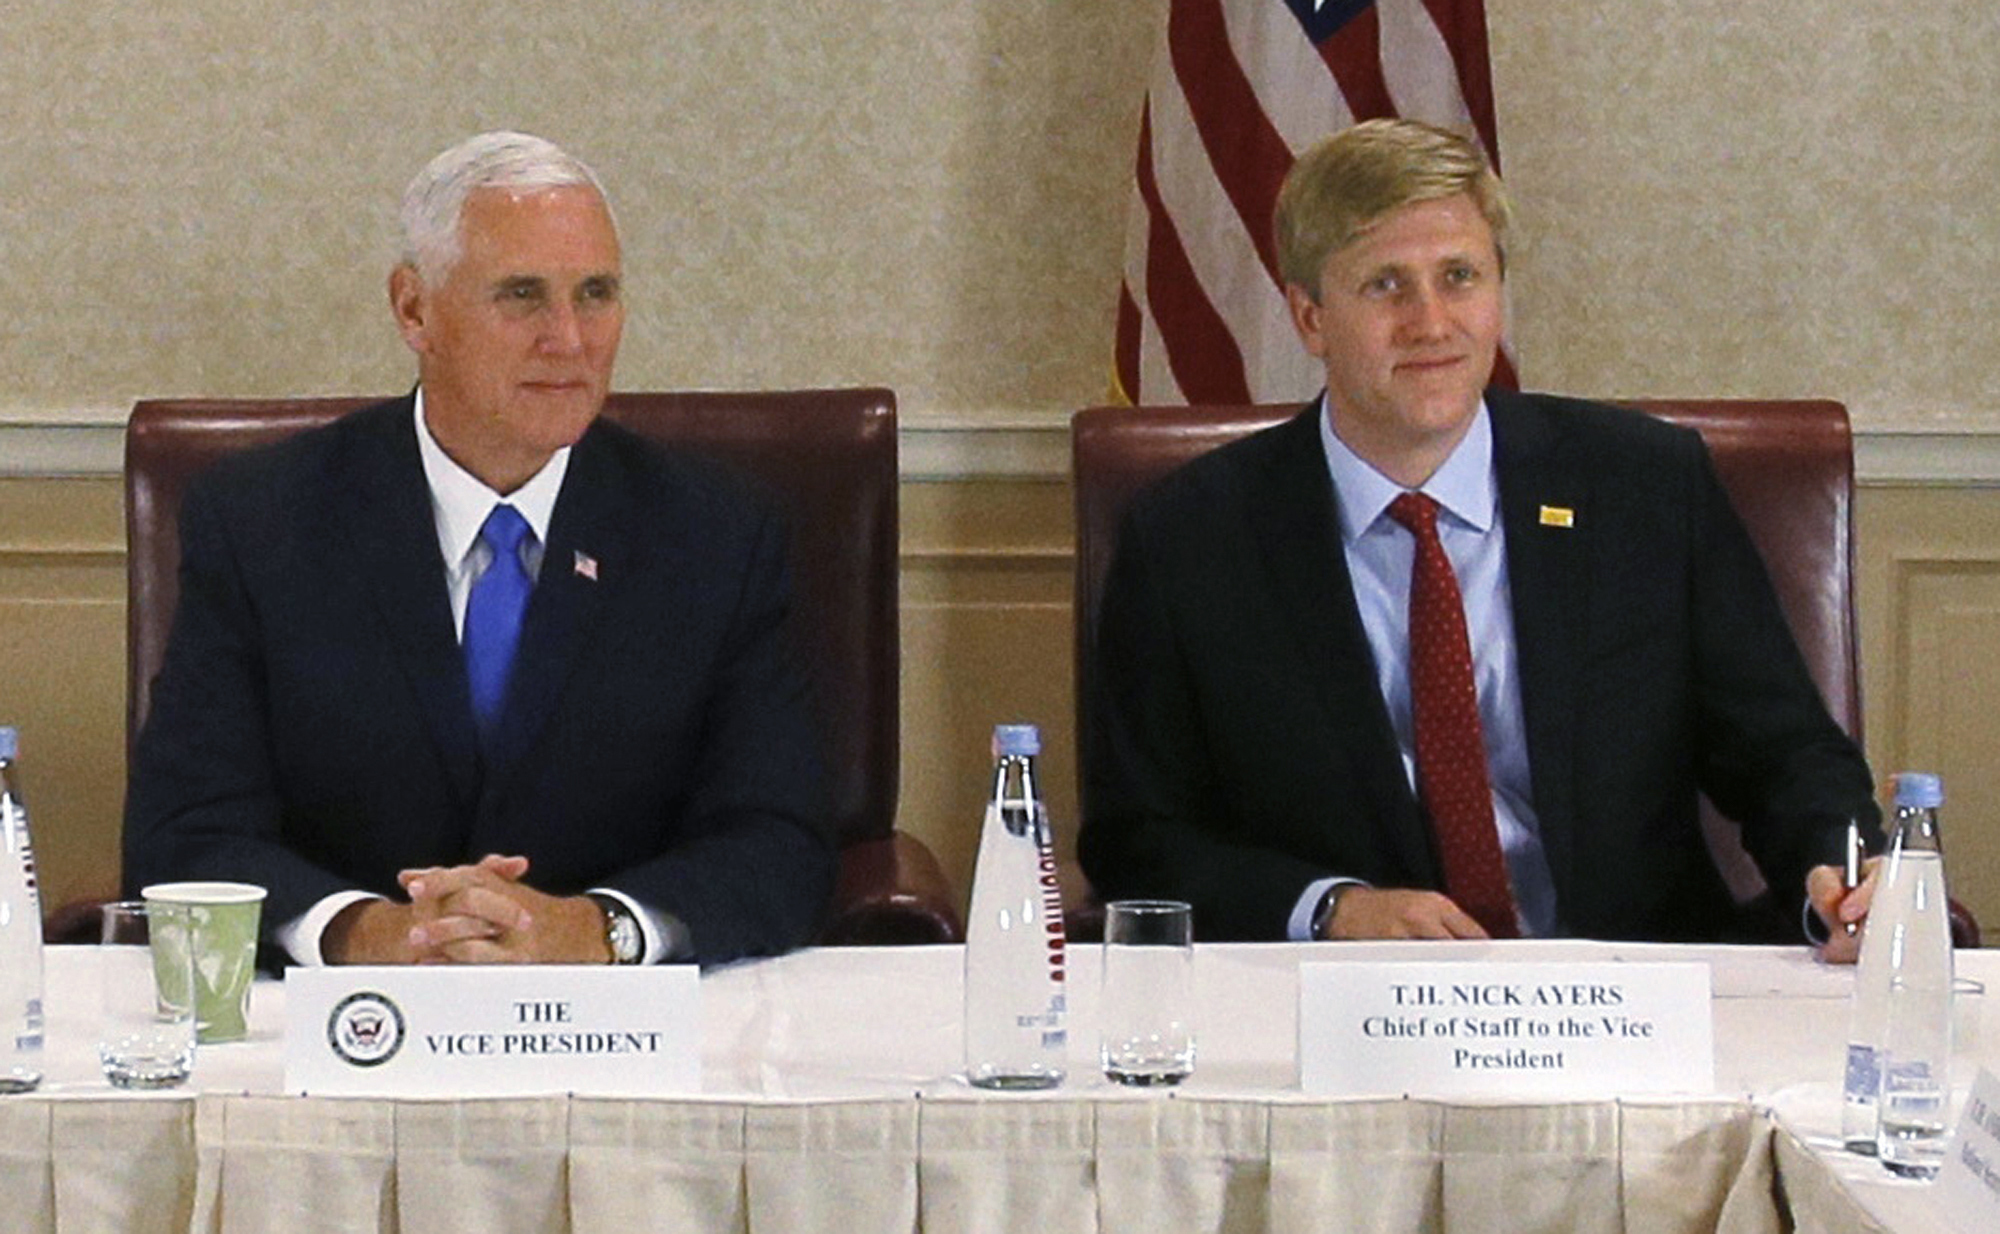 FILE - Vice President Mike Pence, left, attends a meeting with Georgia opposition leaders in Tbilisi, Georgia. Chief of Staff to the Vice President, Nick Ayers, is right.